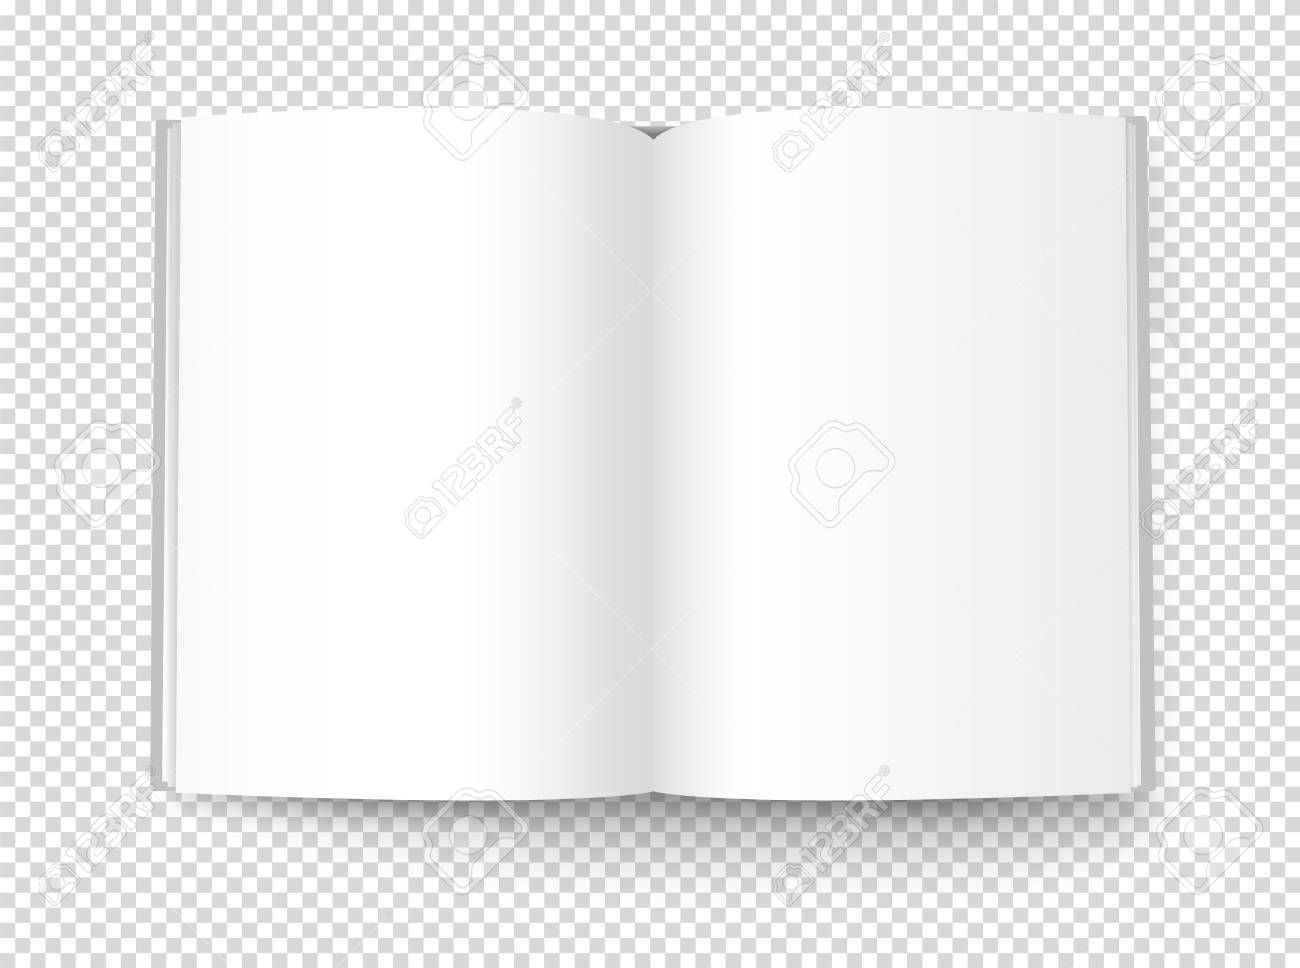 Blank book illustration. Vector object isolated on transparent background - 109675238